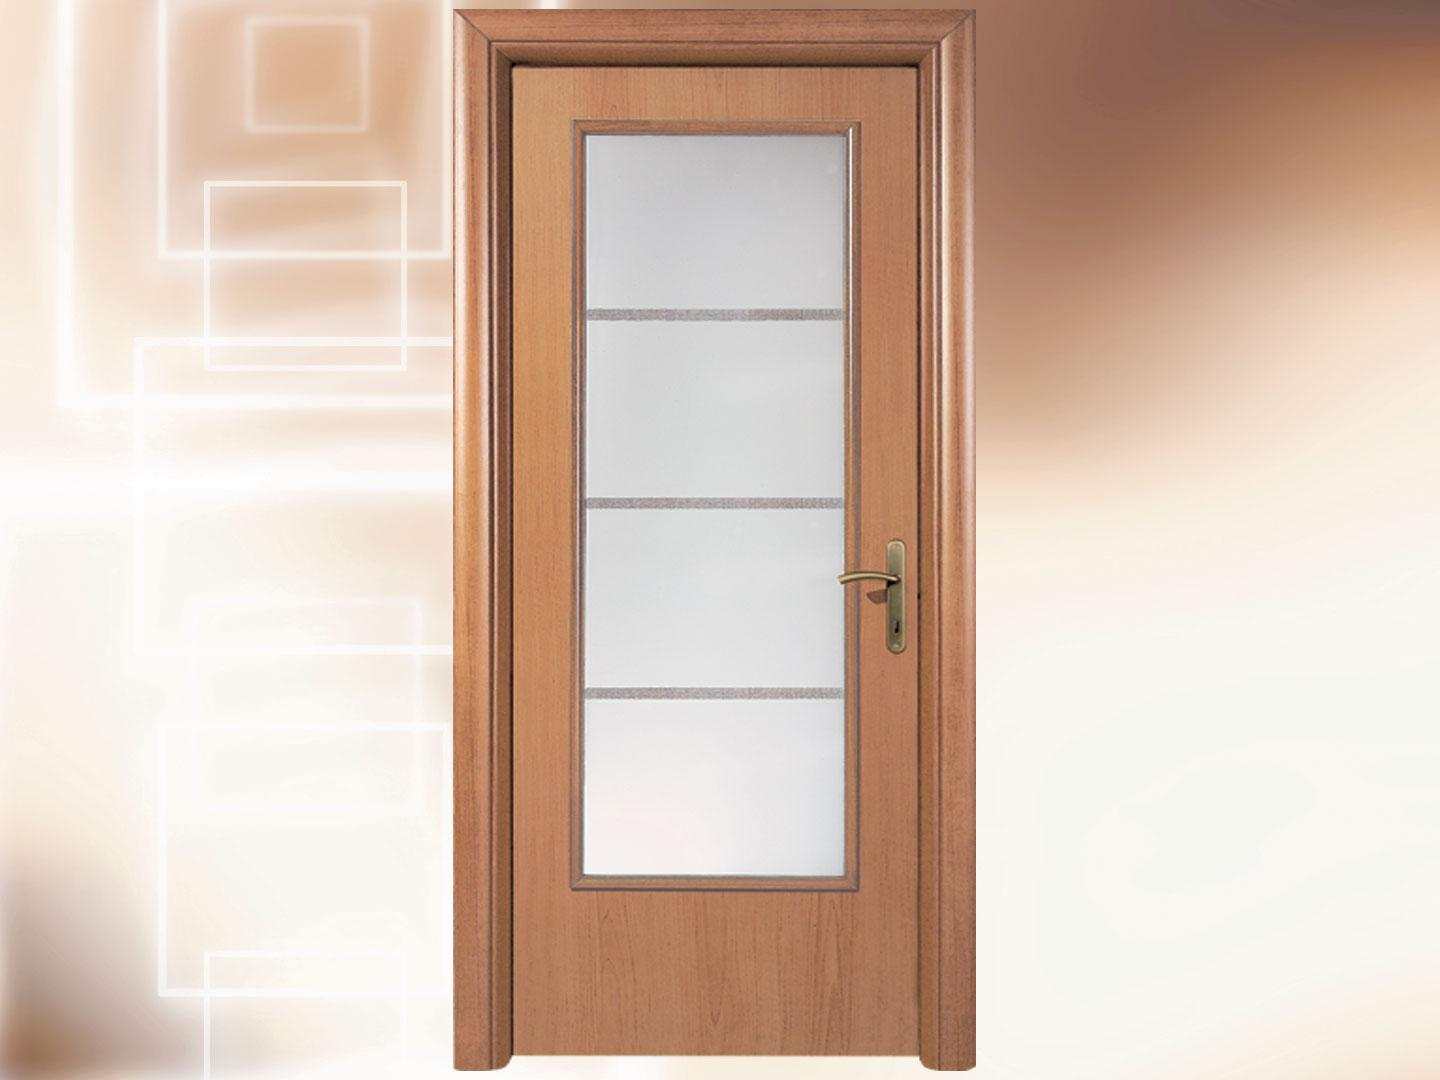 Windows shutters exterior doors and interior doors for Exterior doors and windows